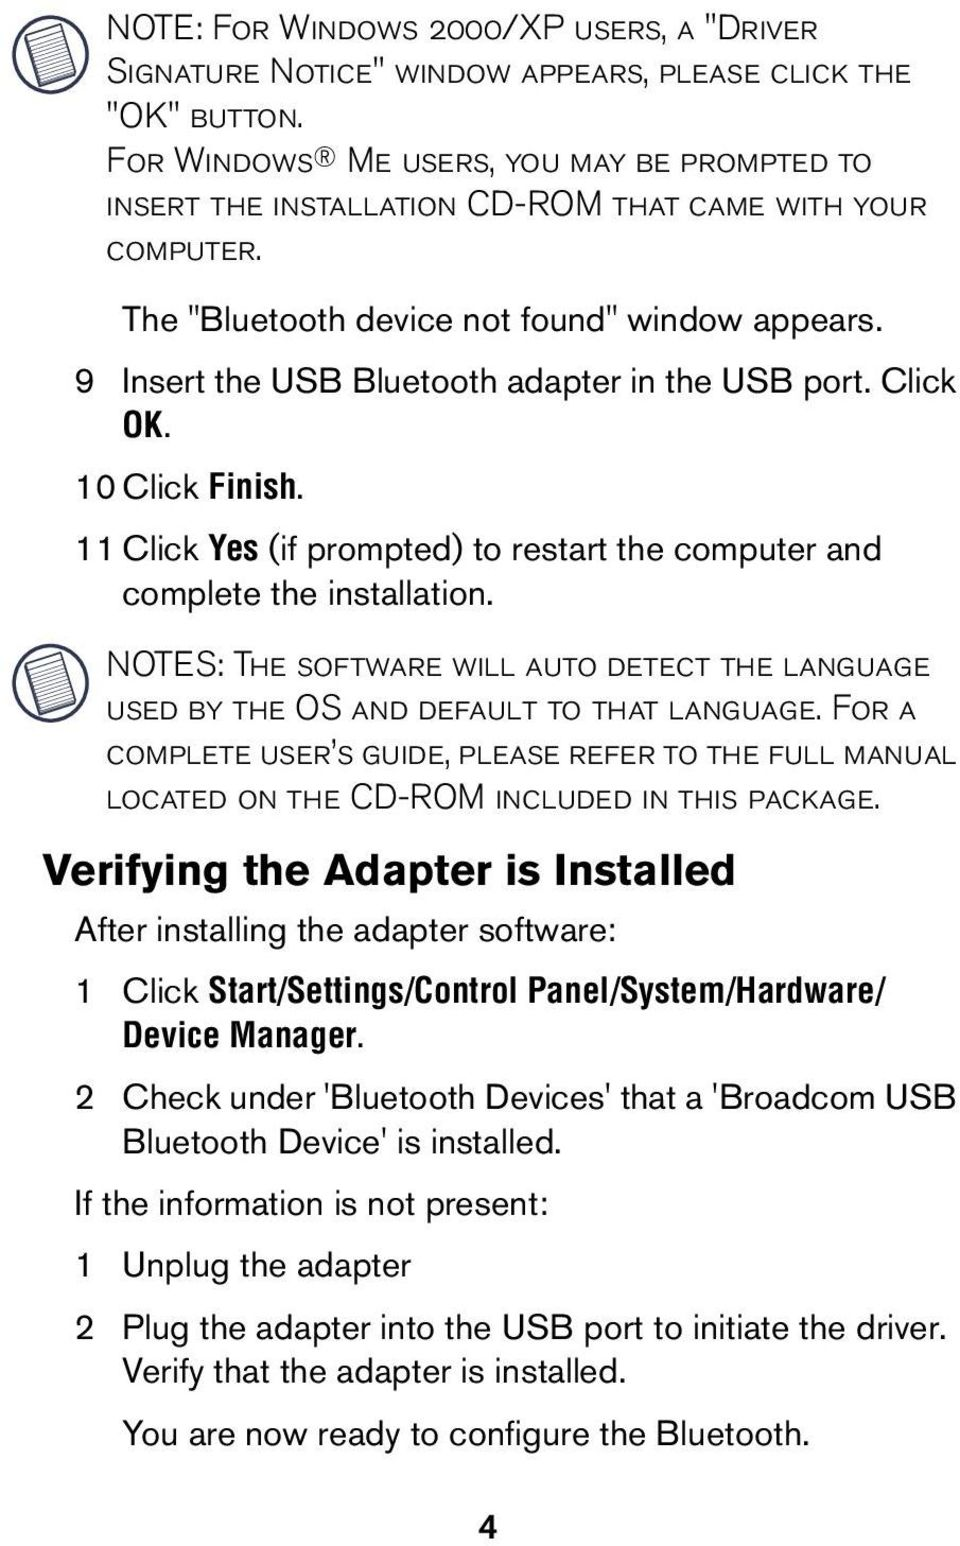 9 Insert the USB Bluetooth adapter in the USB port. Click OK. 10 Click Finish. 11 Click Yes (if prompted) to restart the computer and complete the installation.